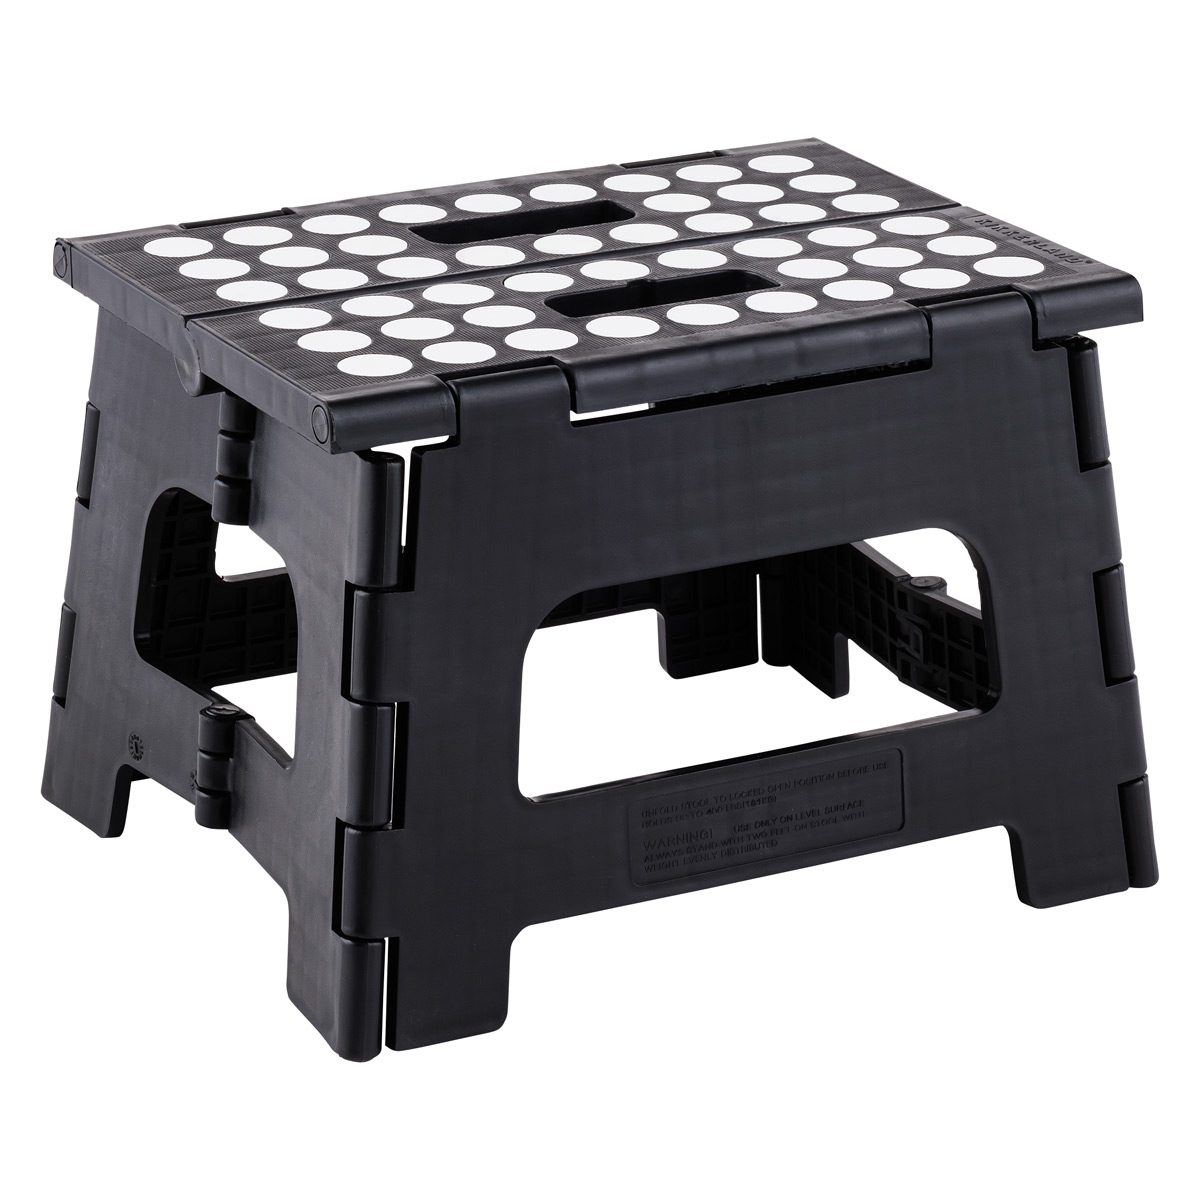 Folding Step Stool - Black Easy Container Store